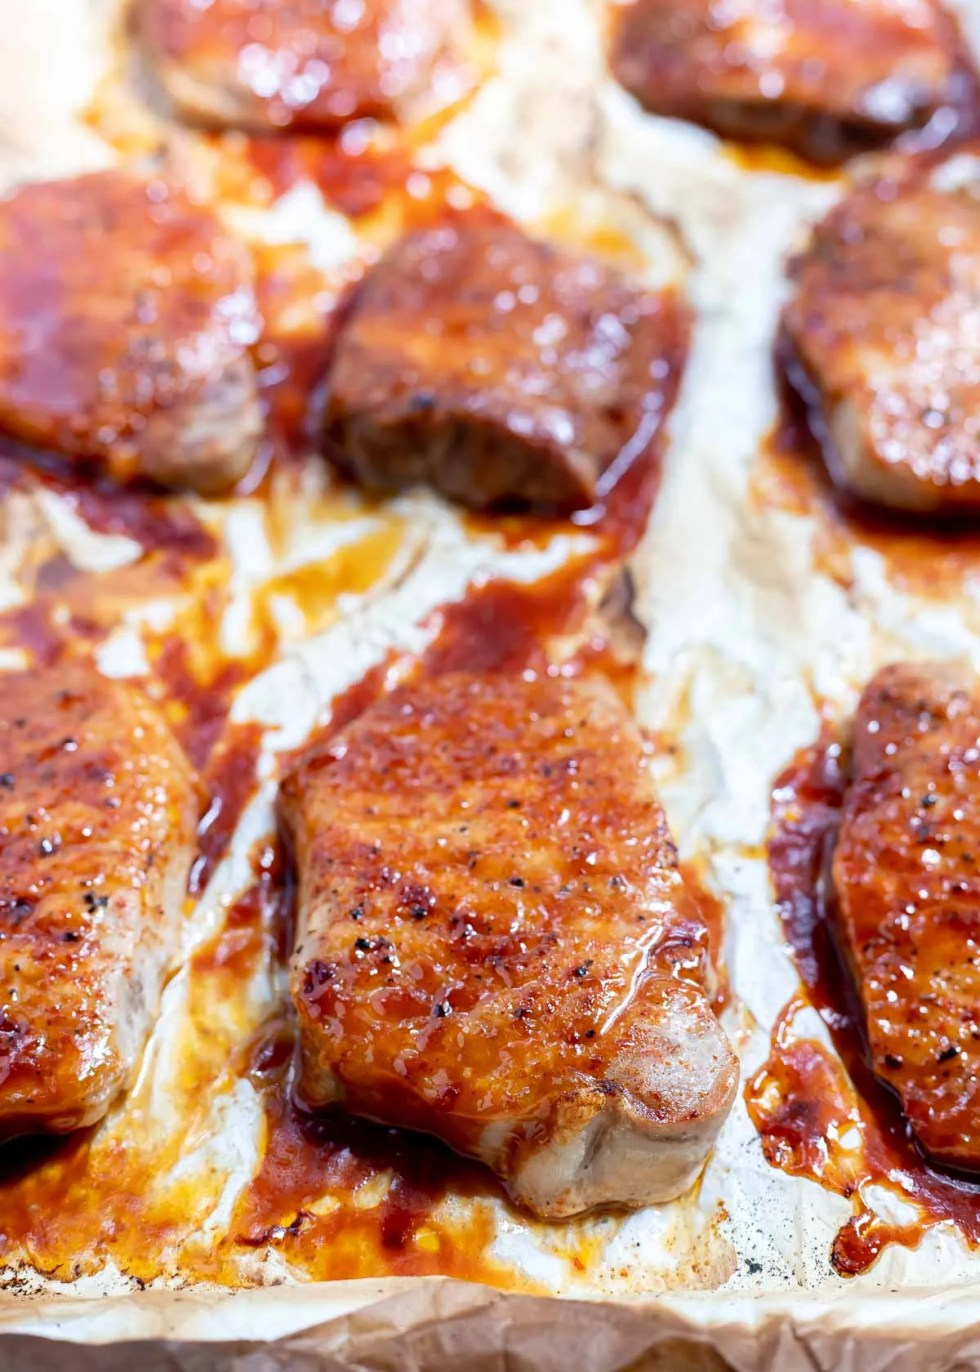 bbq pork chops fresh out of the oven